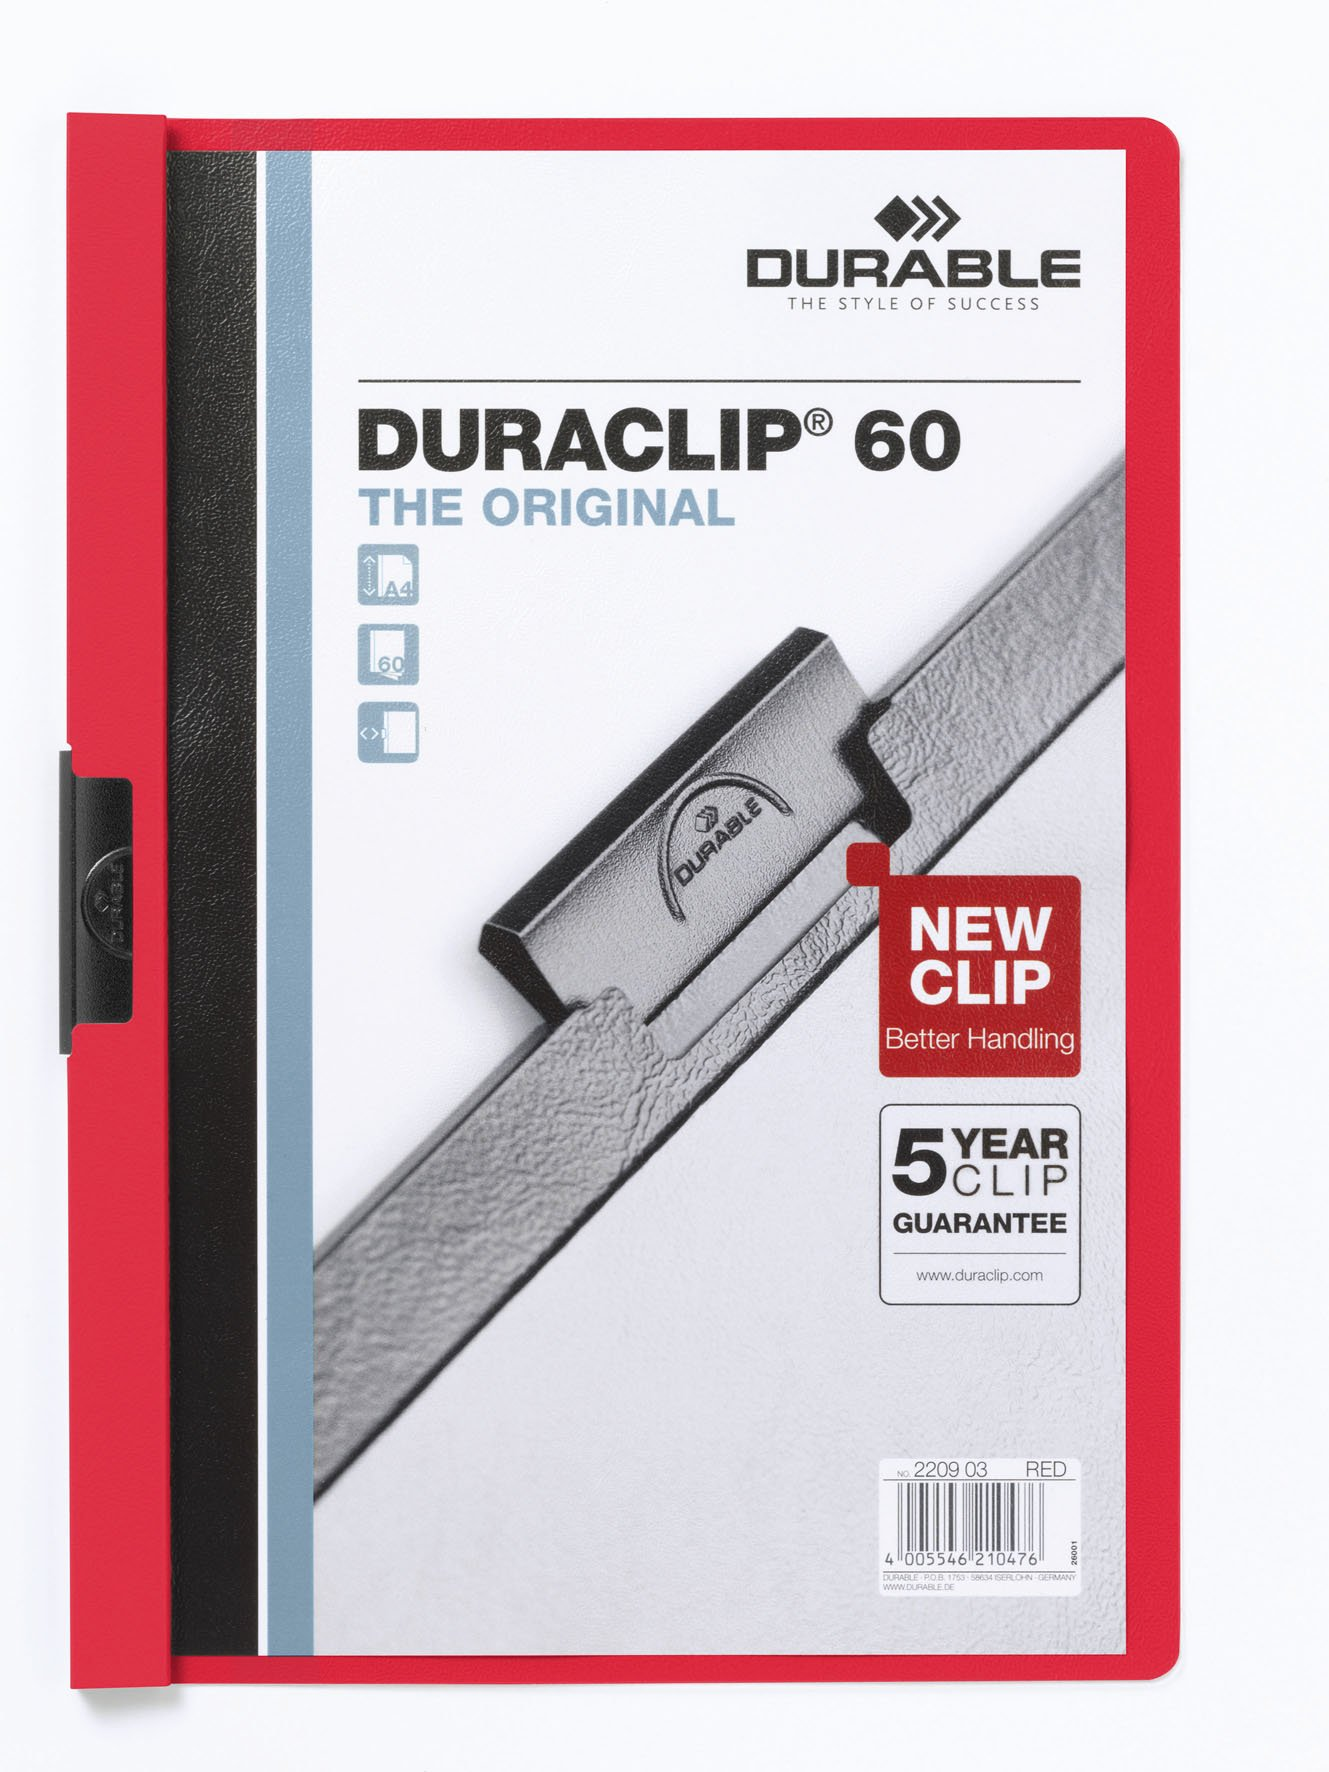 Durable Duraclip Folder PVC Clear Front 6mm Spine for 60 Sheets A4 Red Ref 2209/03 [Pack of 25]